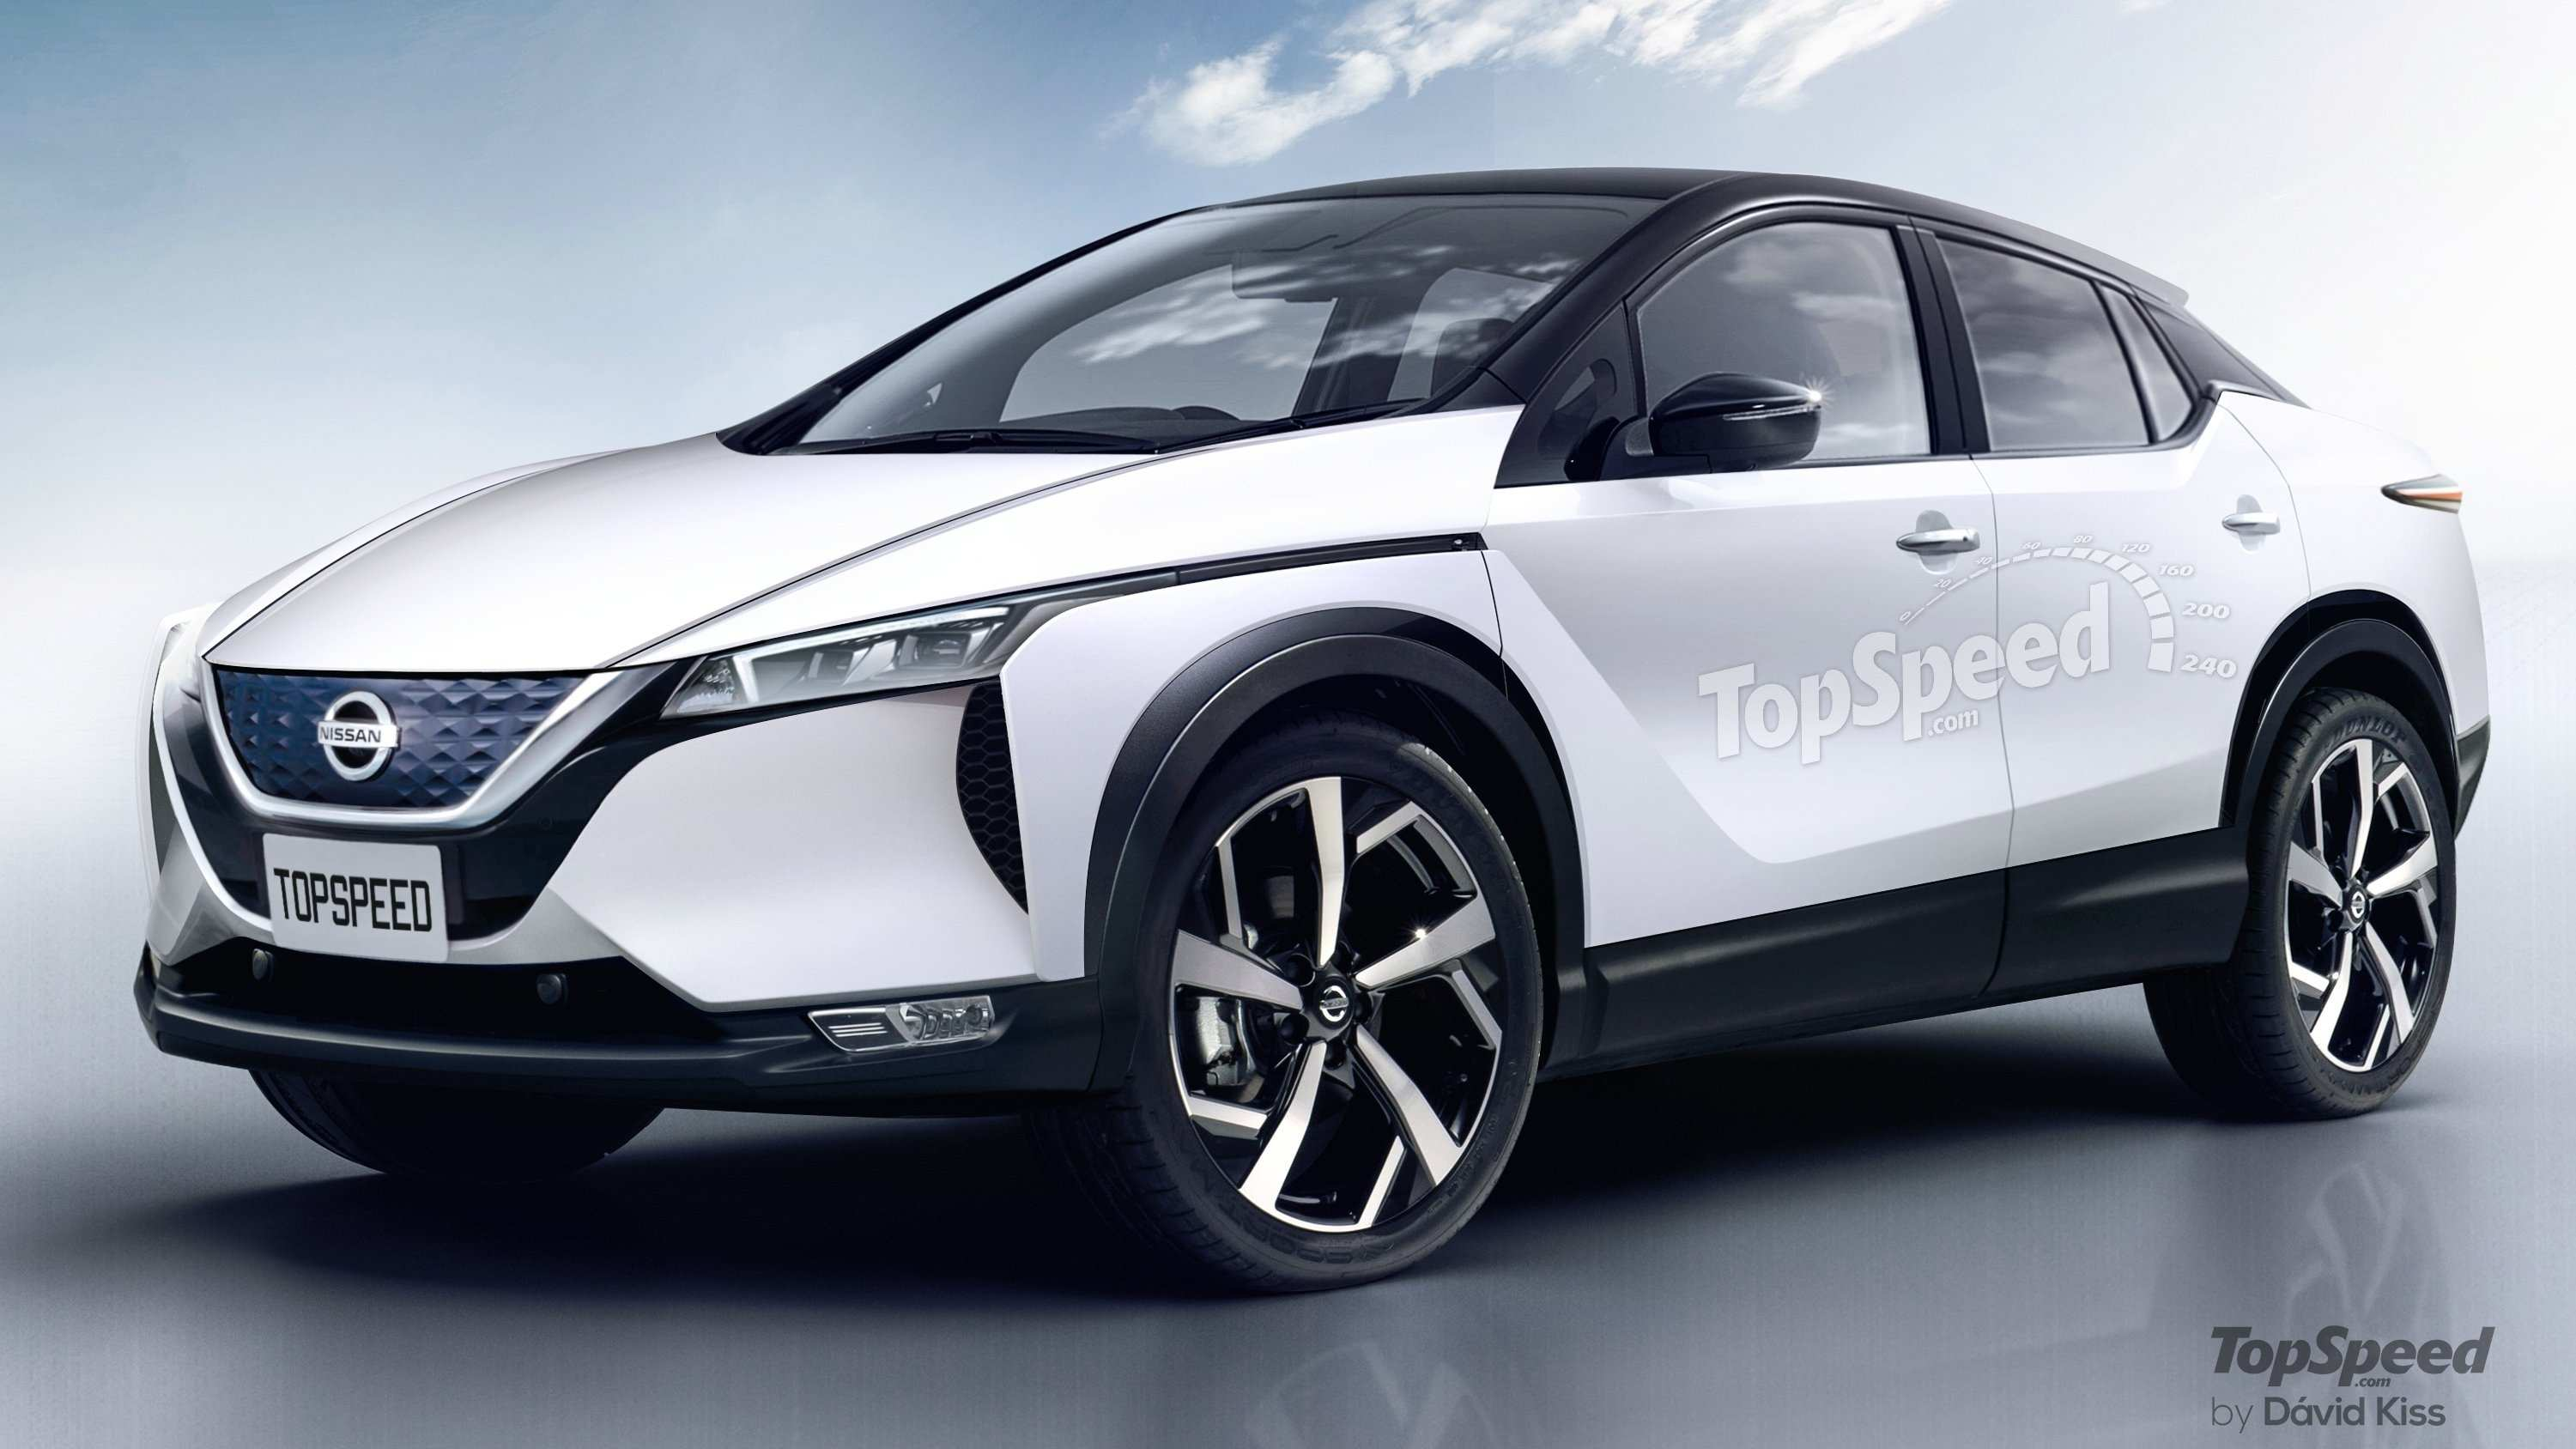 53 Concept of Nissan Patrol 2020 New Concept Style by Nissan Patrol 2020 New Concept